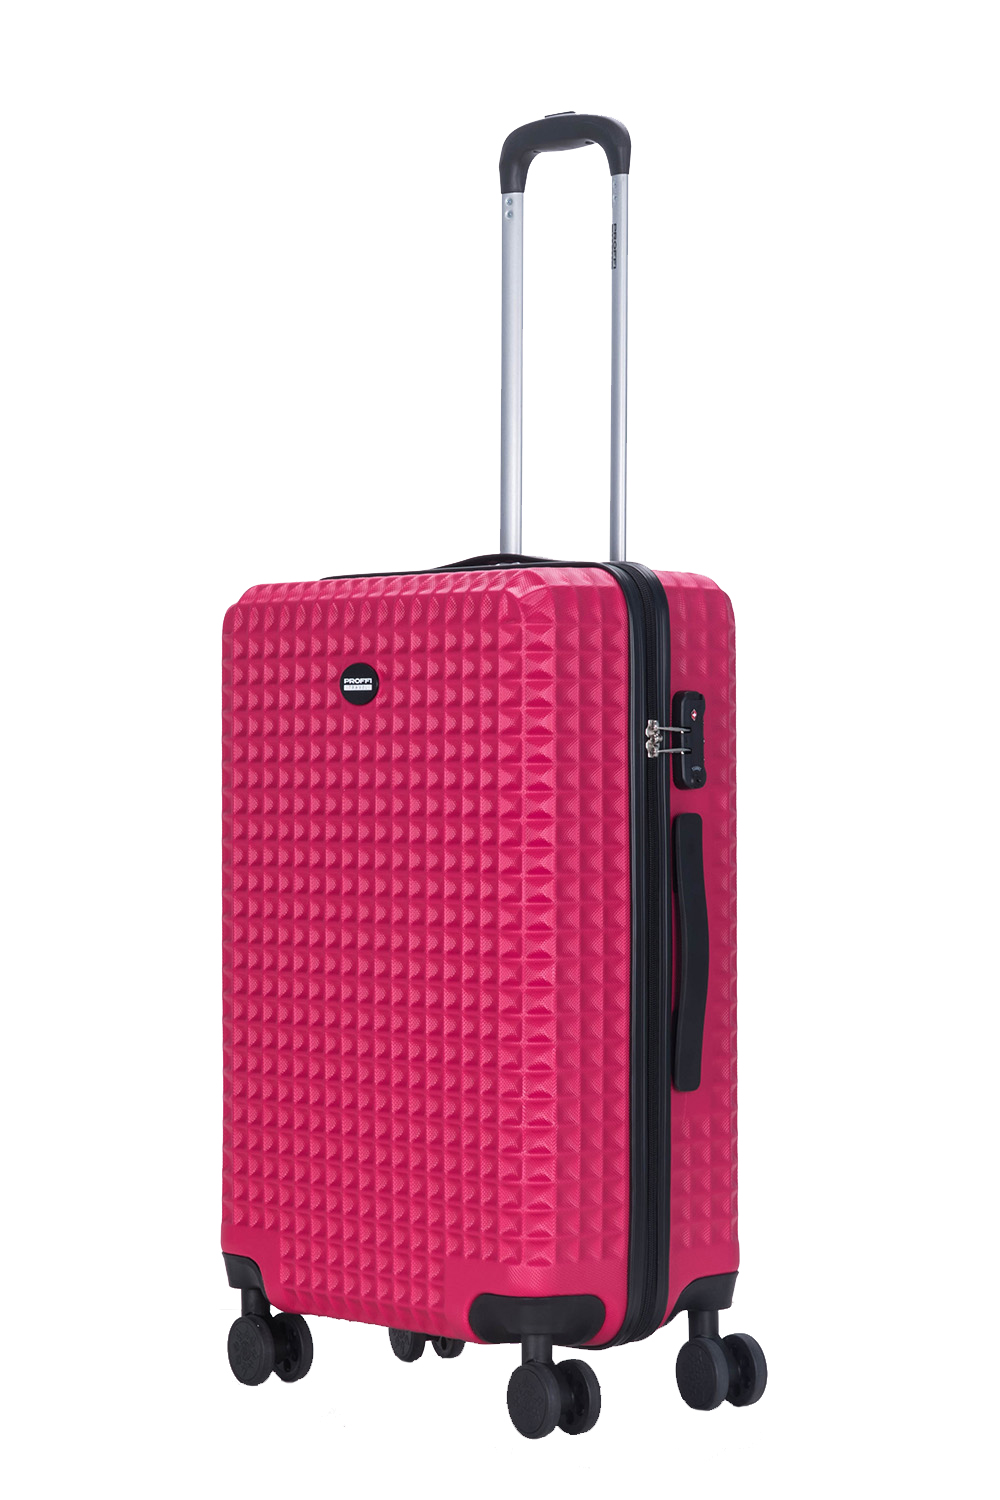 Plastic suitcase PROFFI TRAVEL Tour Quattro Smart PH9692, with built-in weighs and USB, pink, M portable digital usb microscope in built white light 8pcs led magnifier